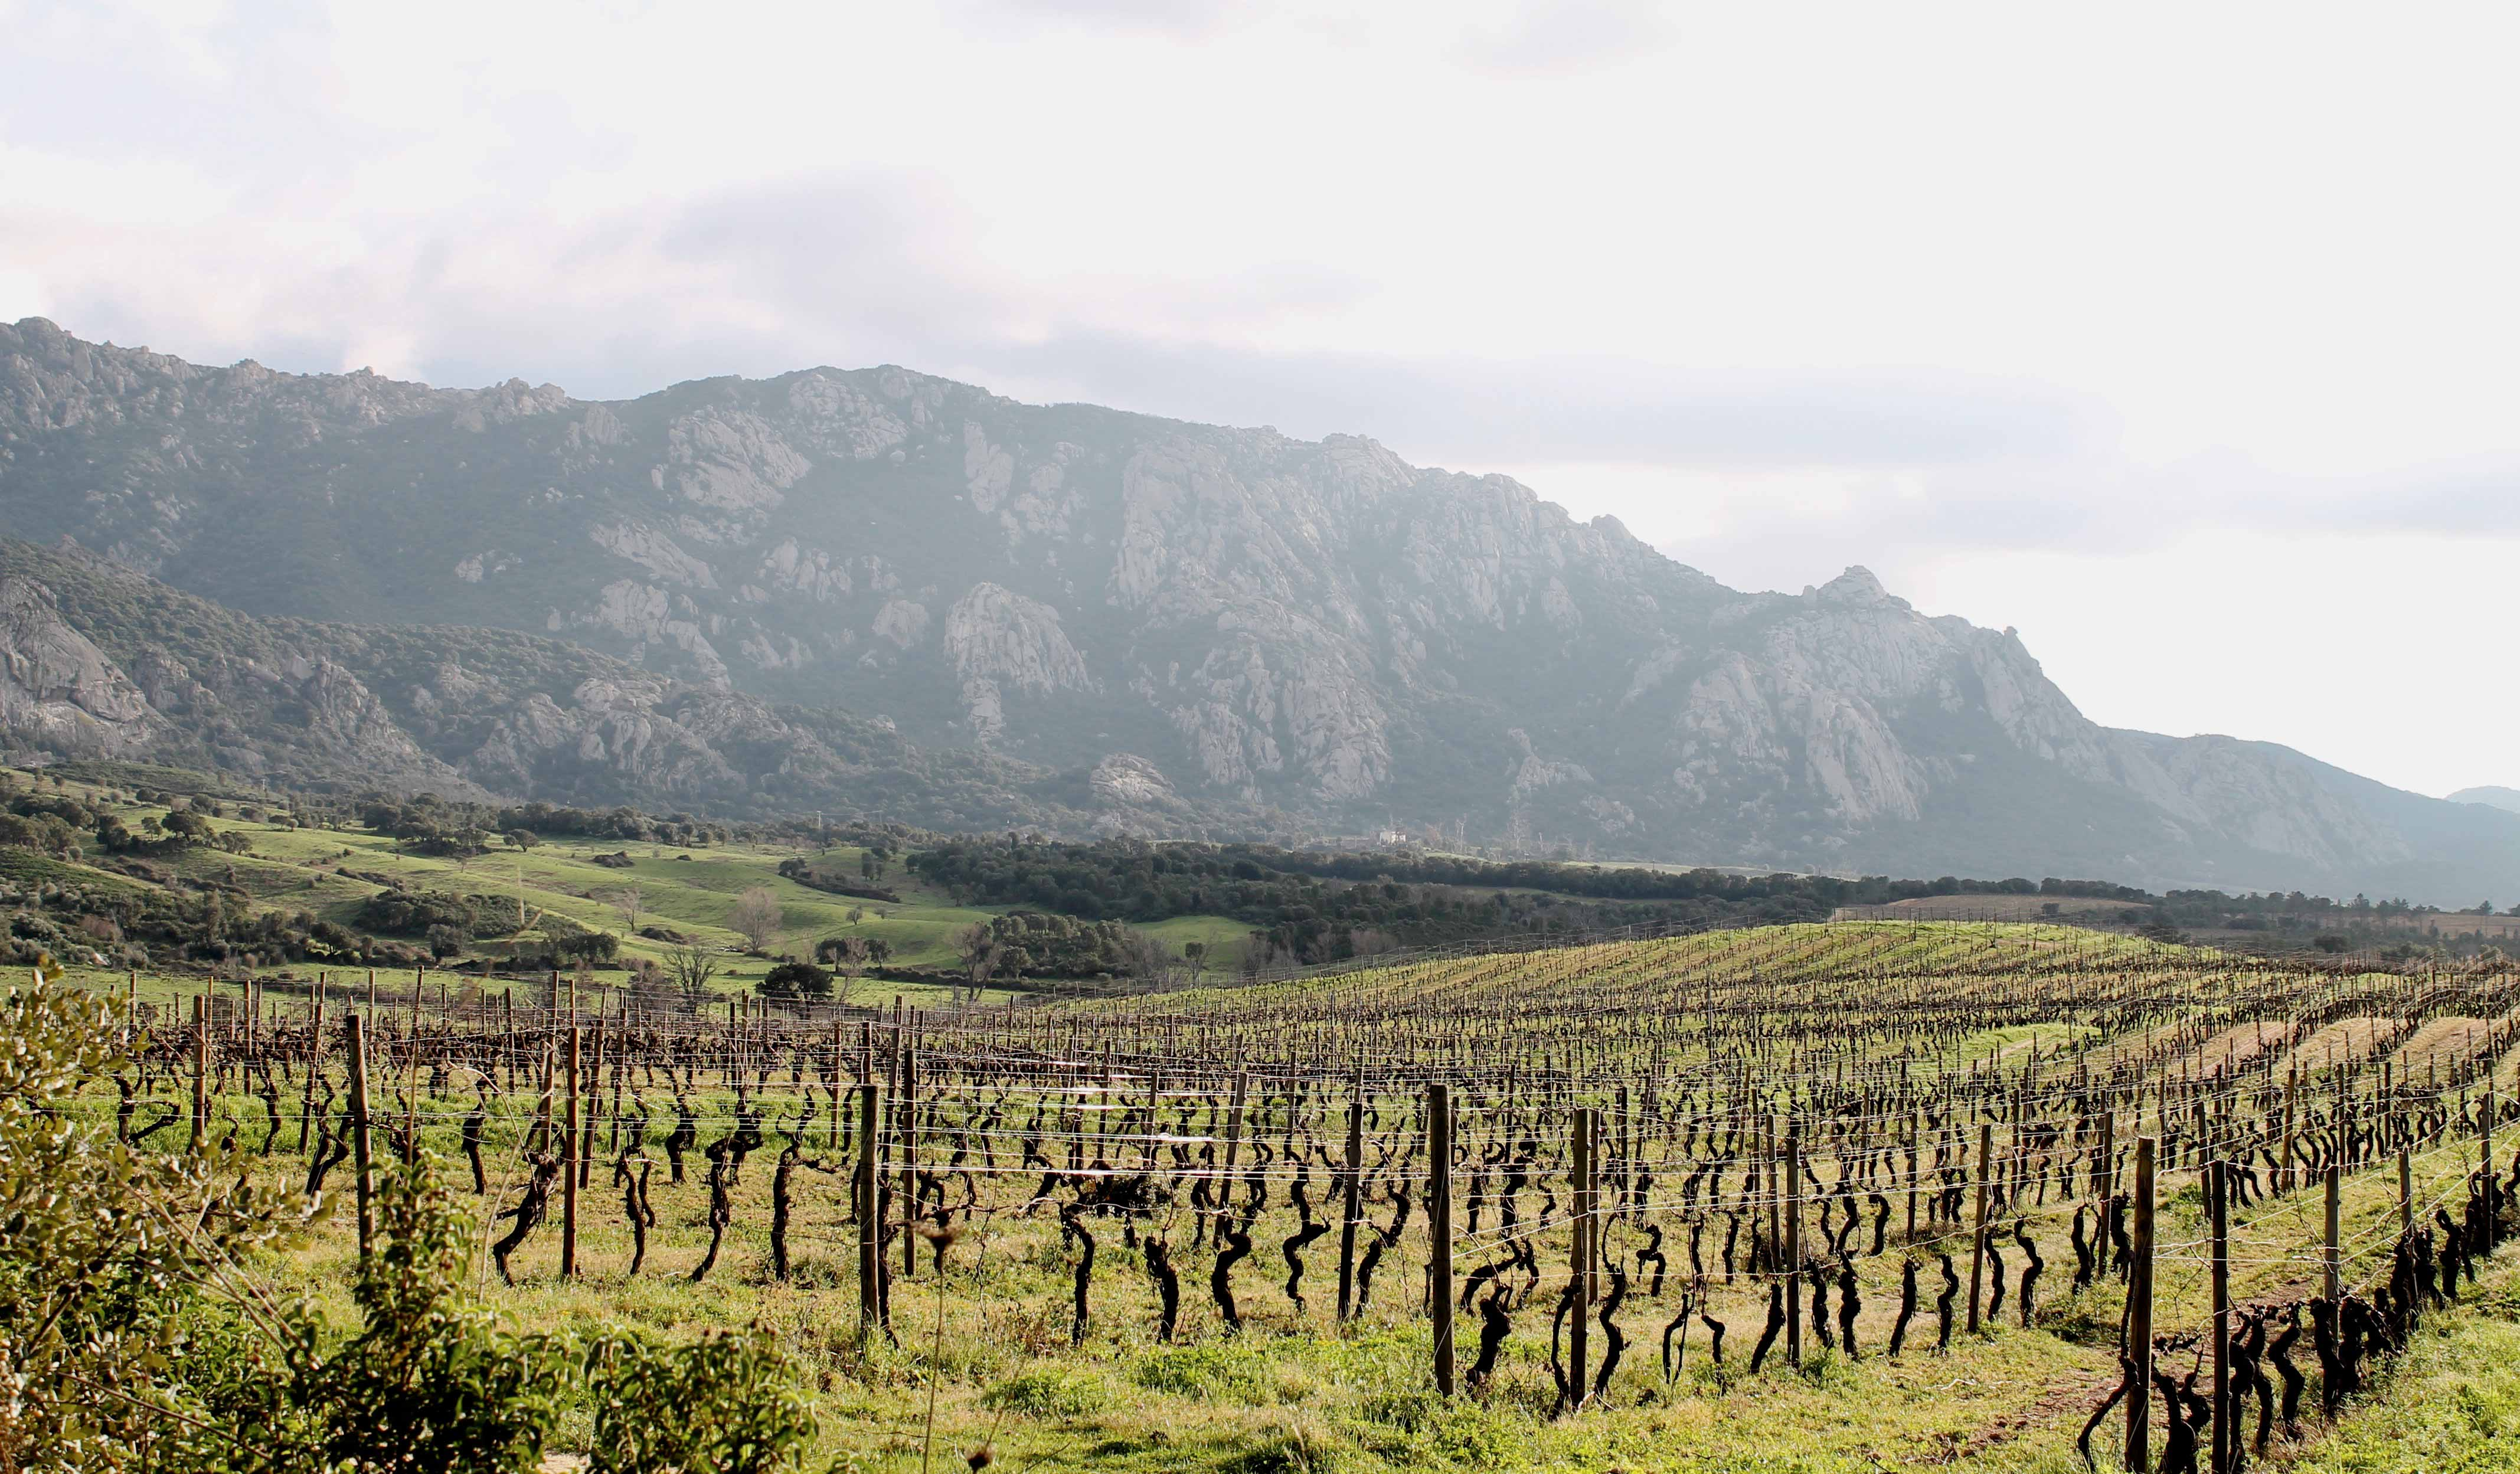 Corsica wine tour, vineyard at the foot of a mountain